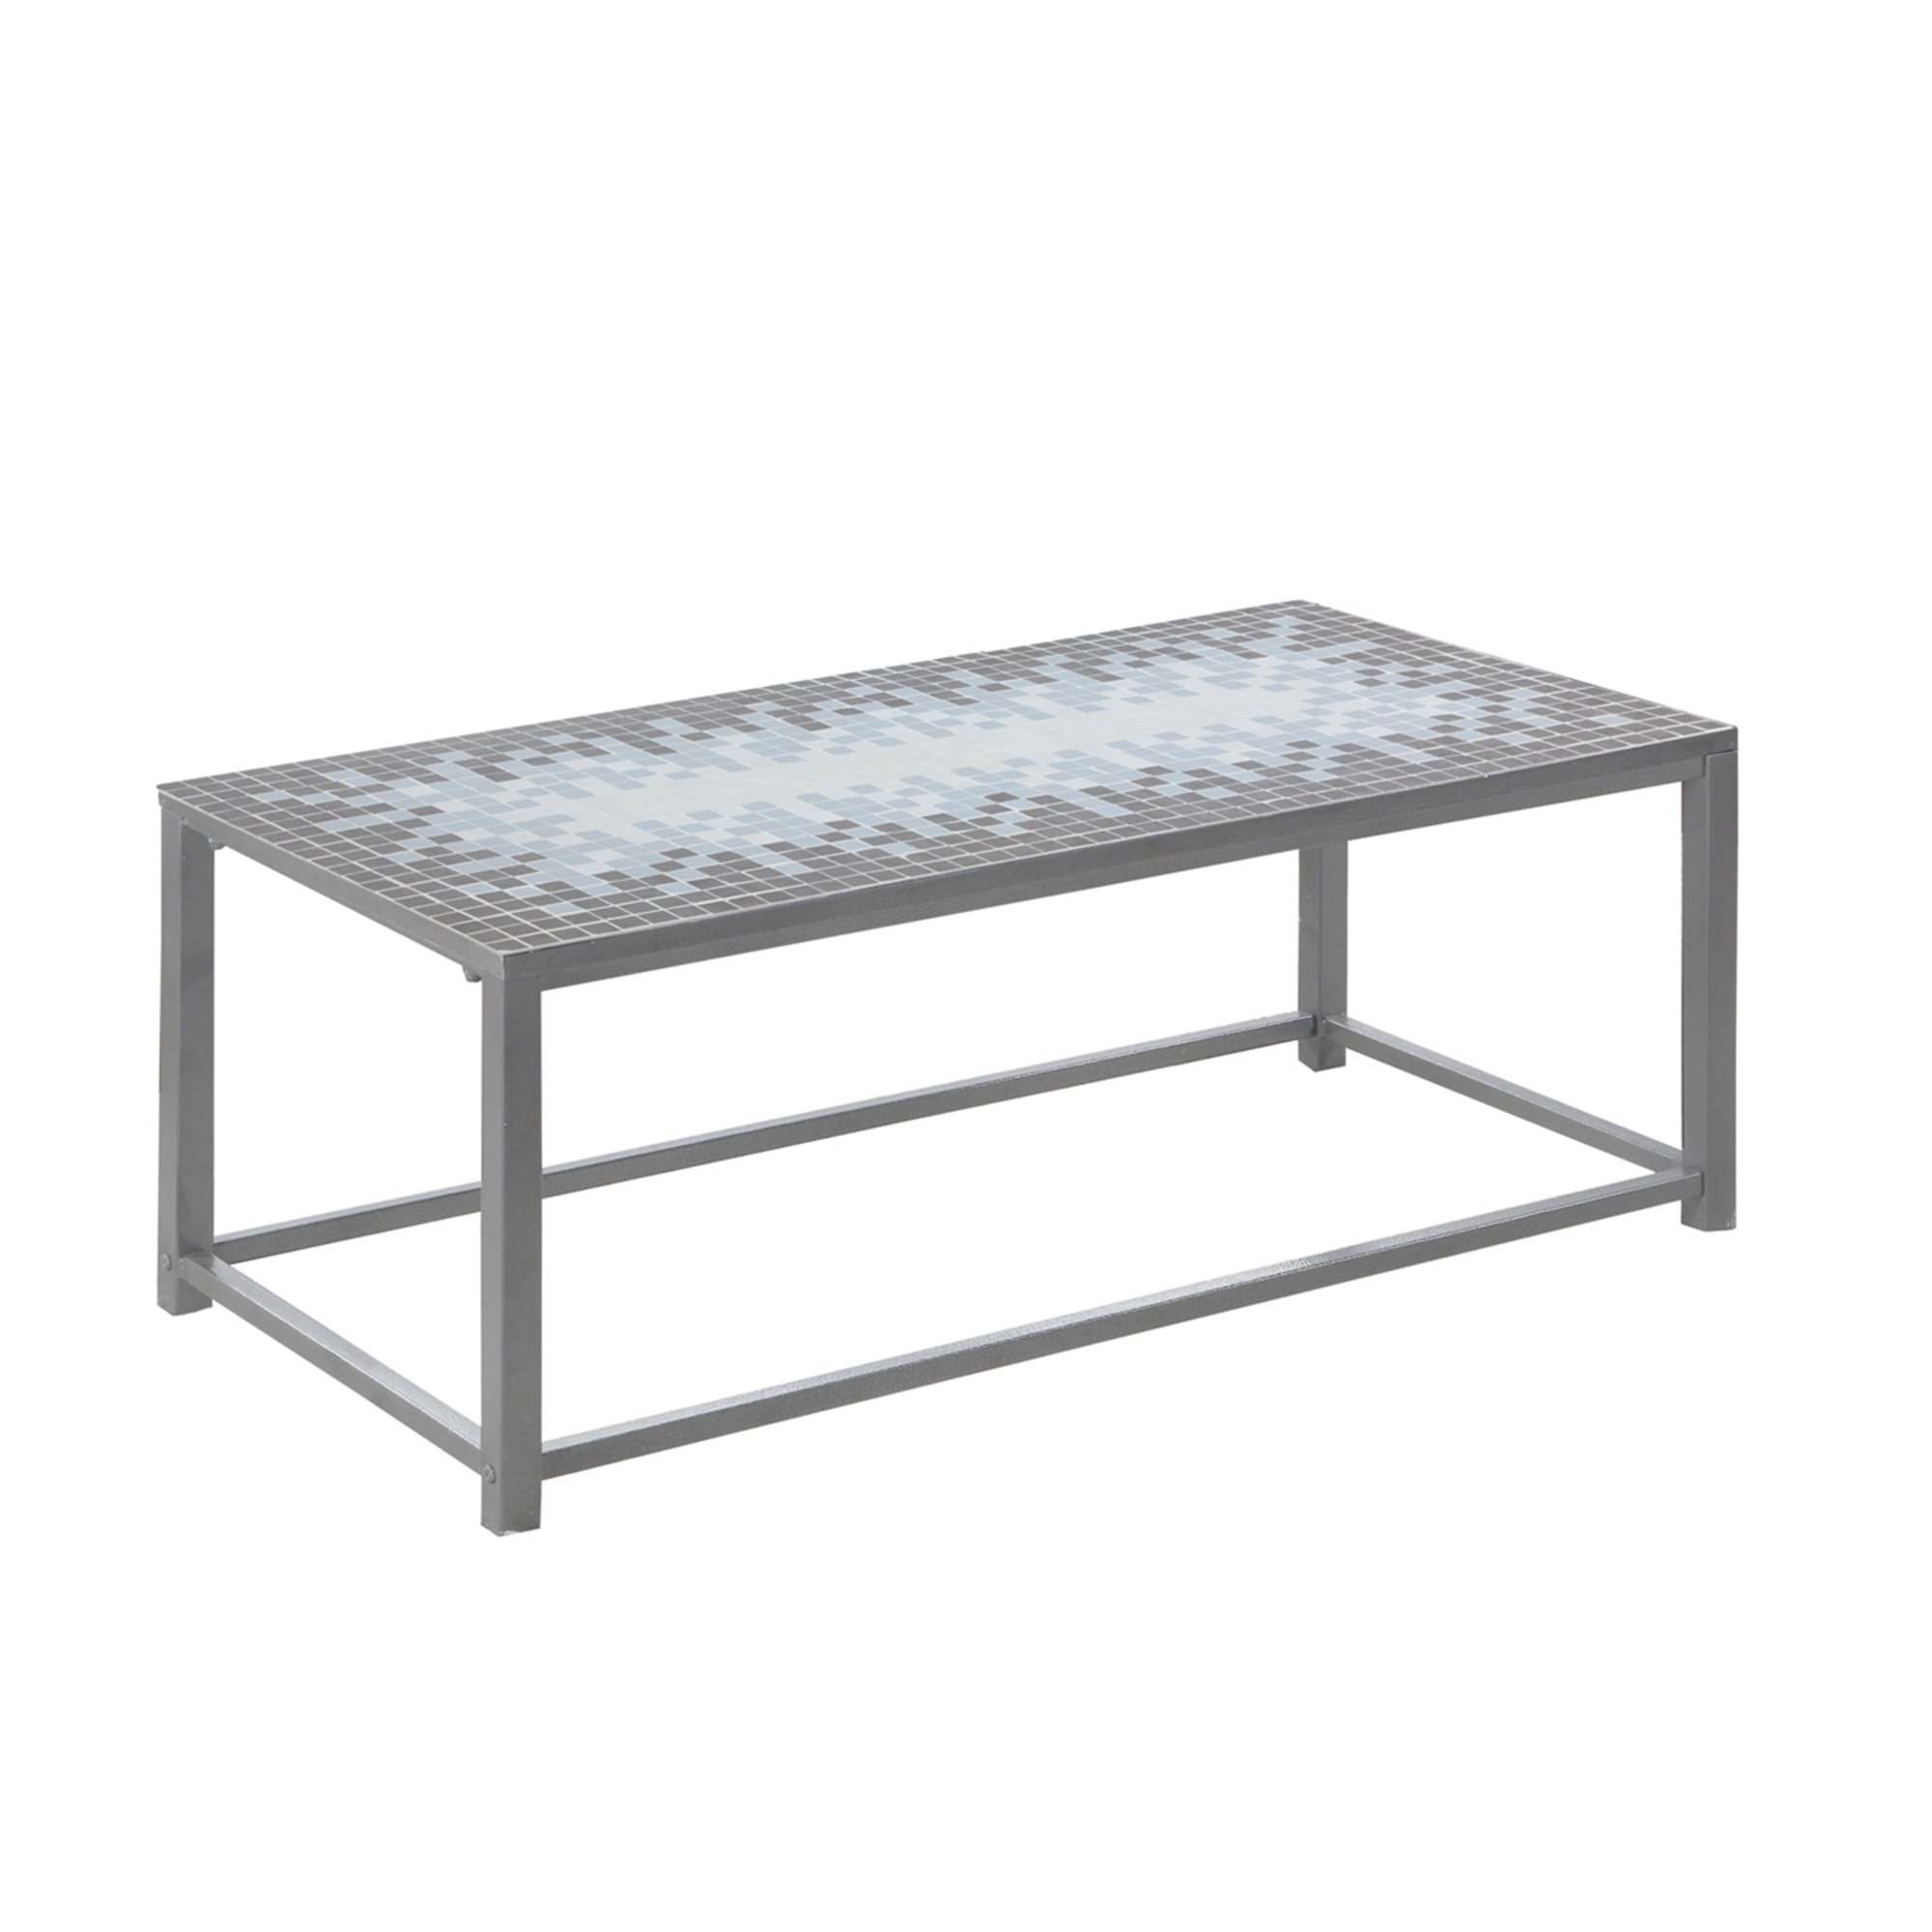 "42"" Coffee Table, Hammered Silver and Grey/Blue Mosaic Tile Top"